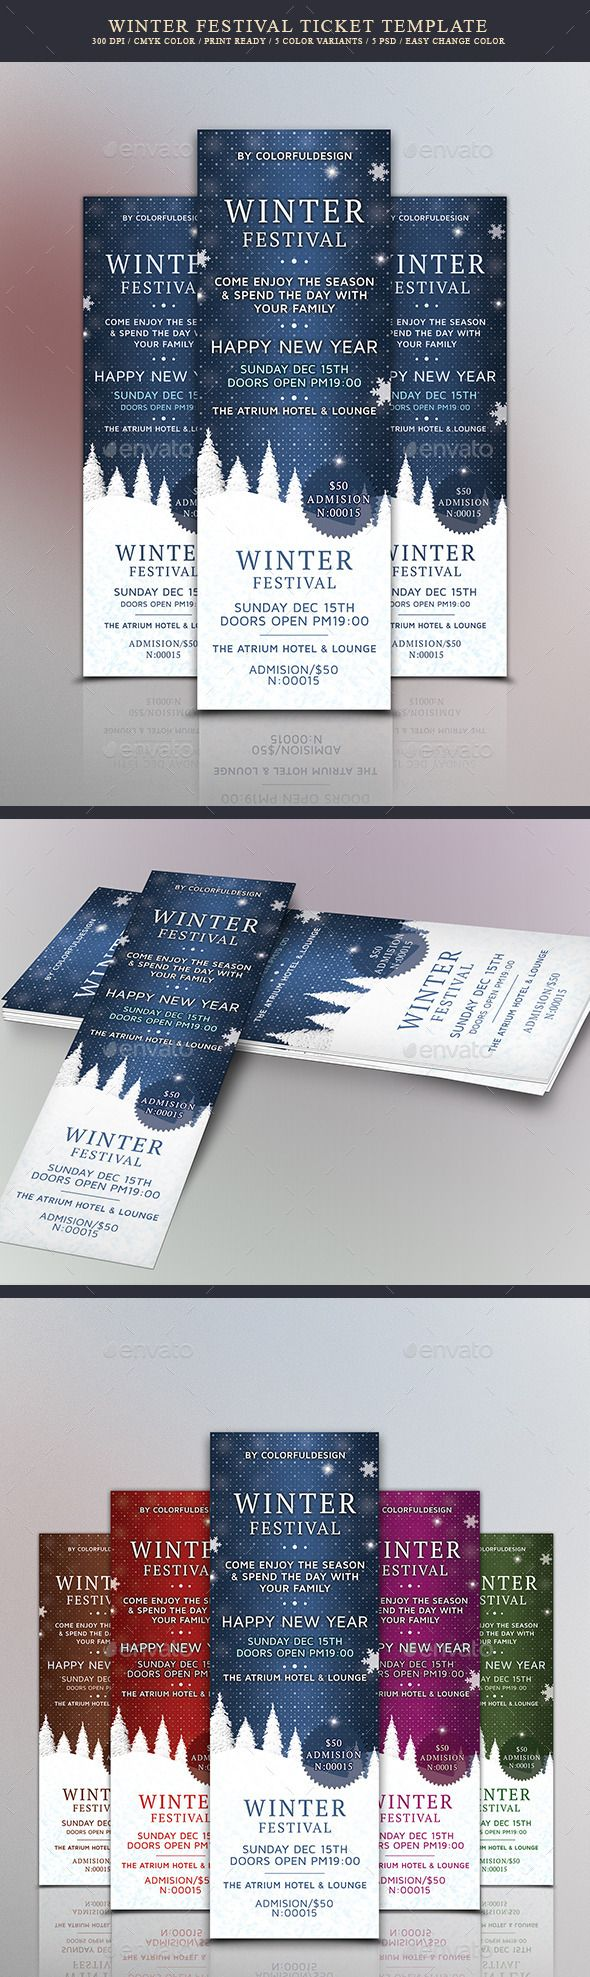 Concert Ticket Template Free Download Stunning 139 Best Invitation Design Images On Pinterest  Christmas Parties .